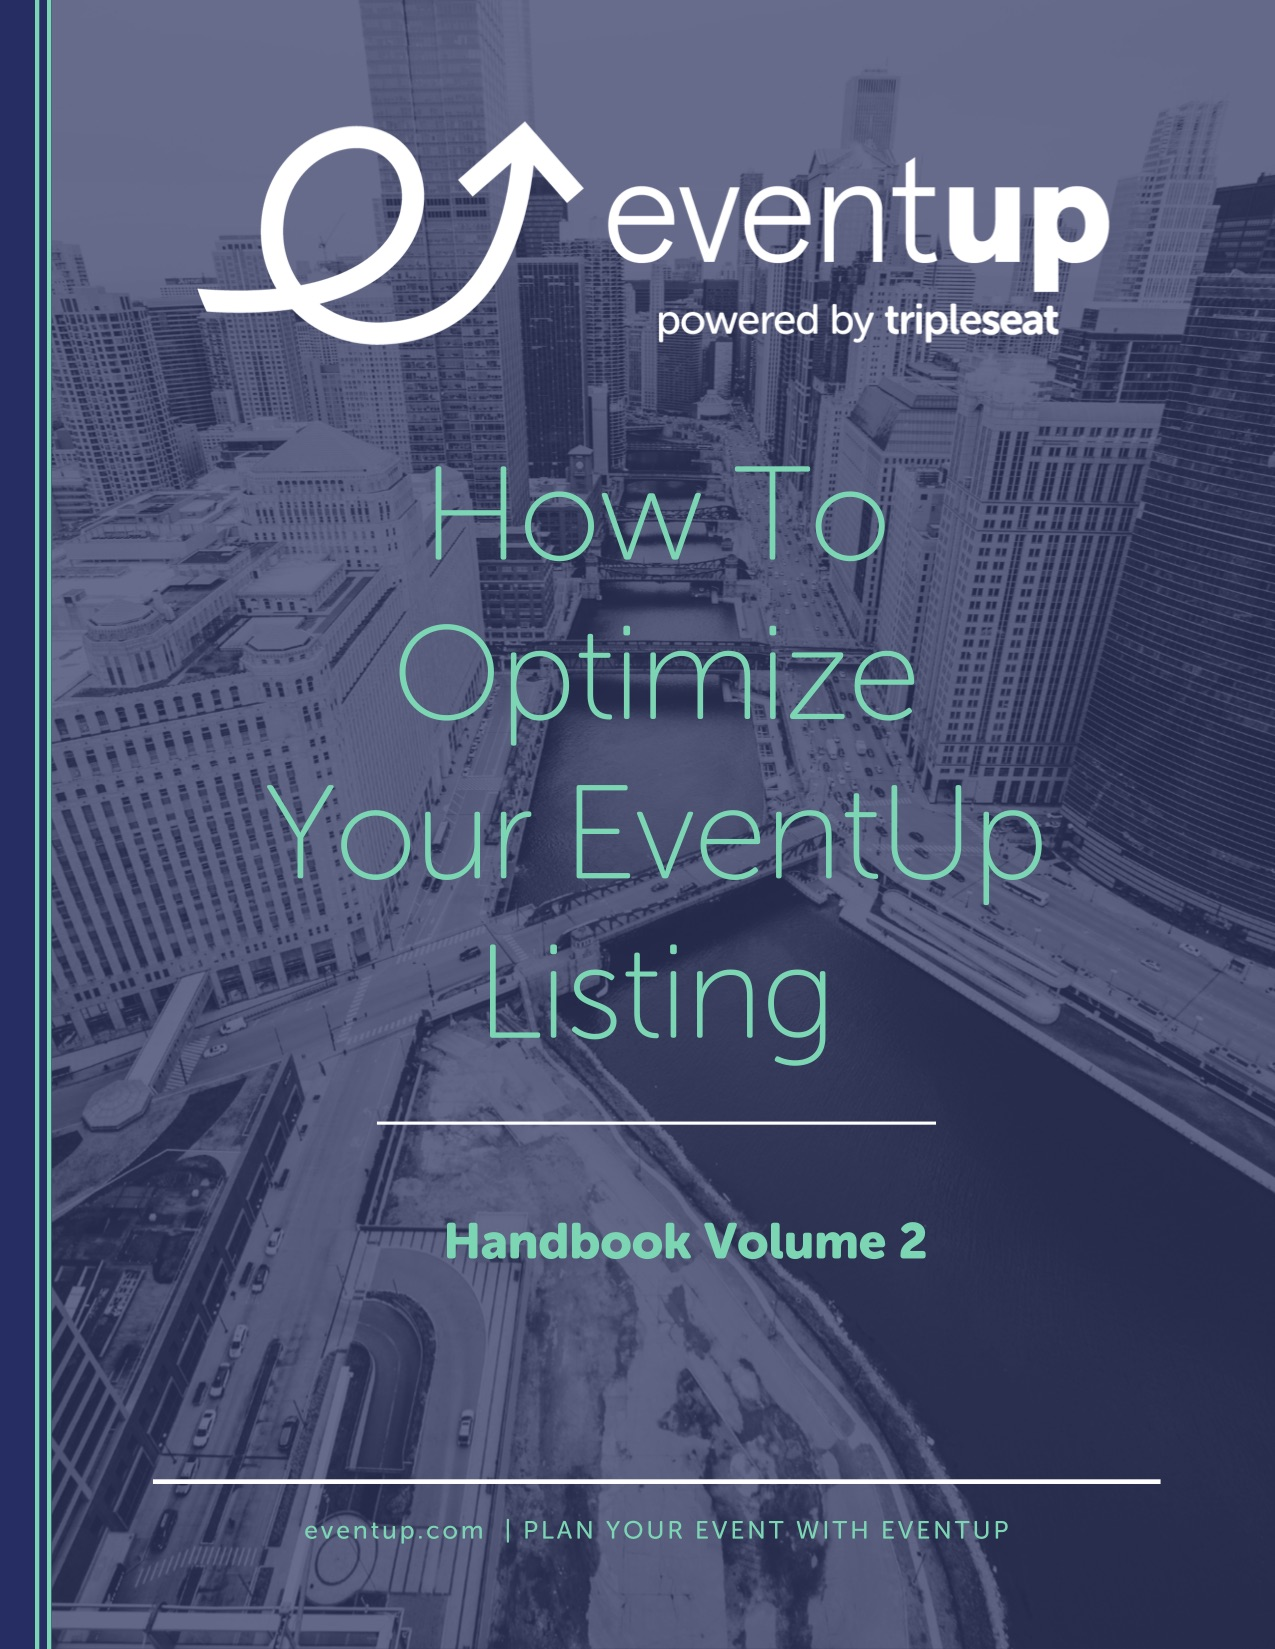 Handbook Vol 2 - How To Optimize Your EventUp Listing